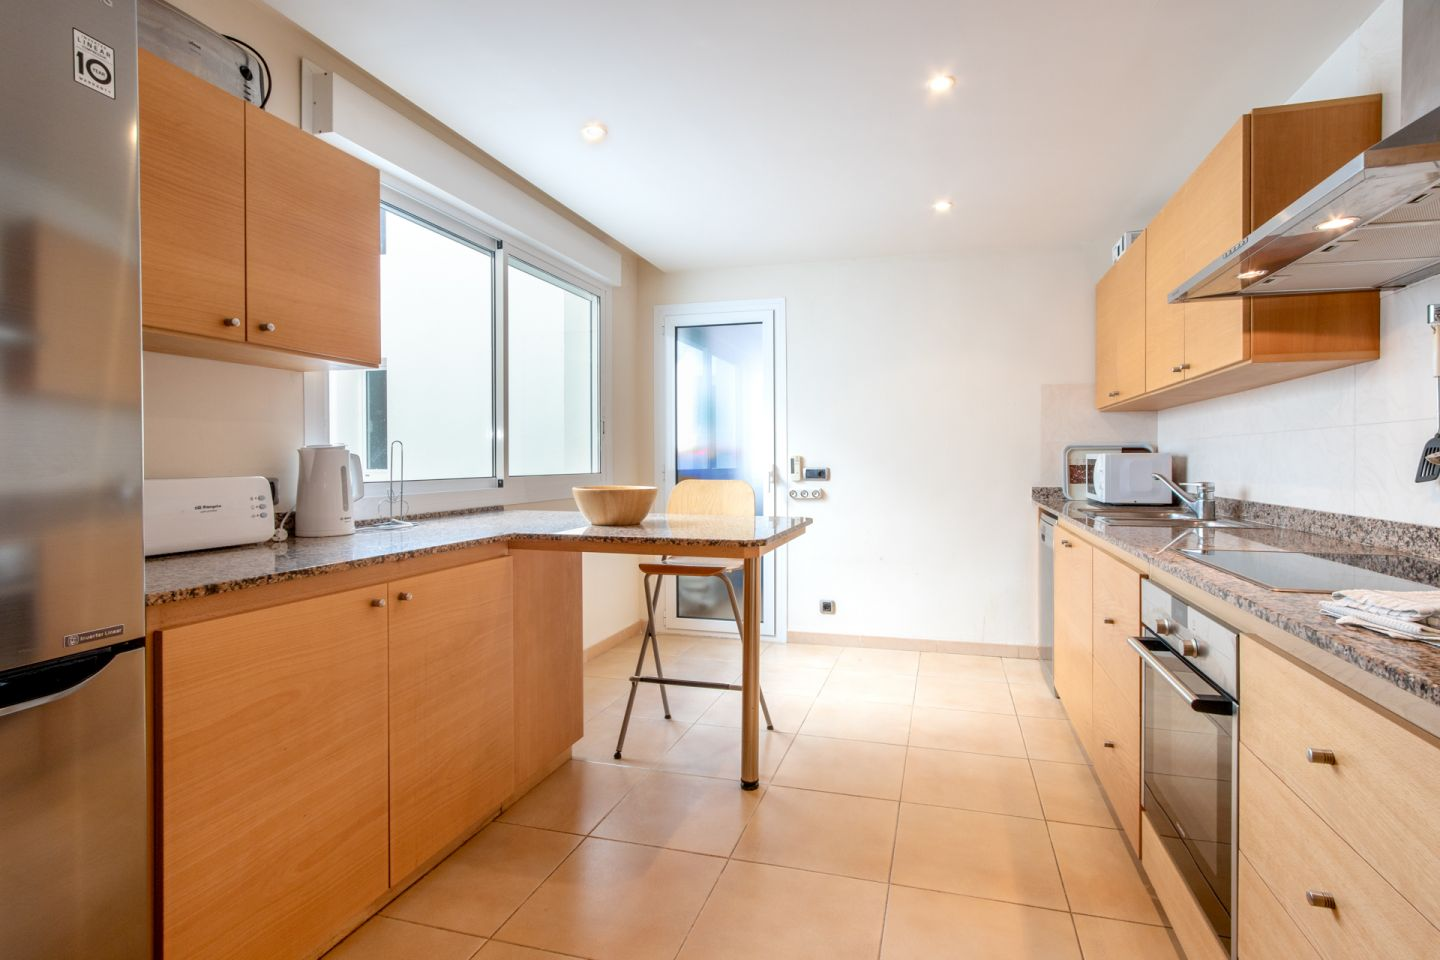 3 Bed Apartment for sale in PUERTO POLLENSA 8